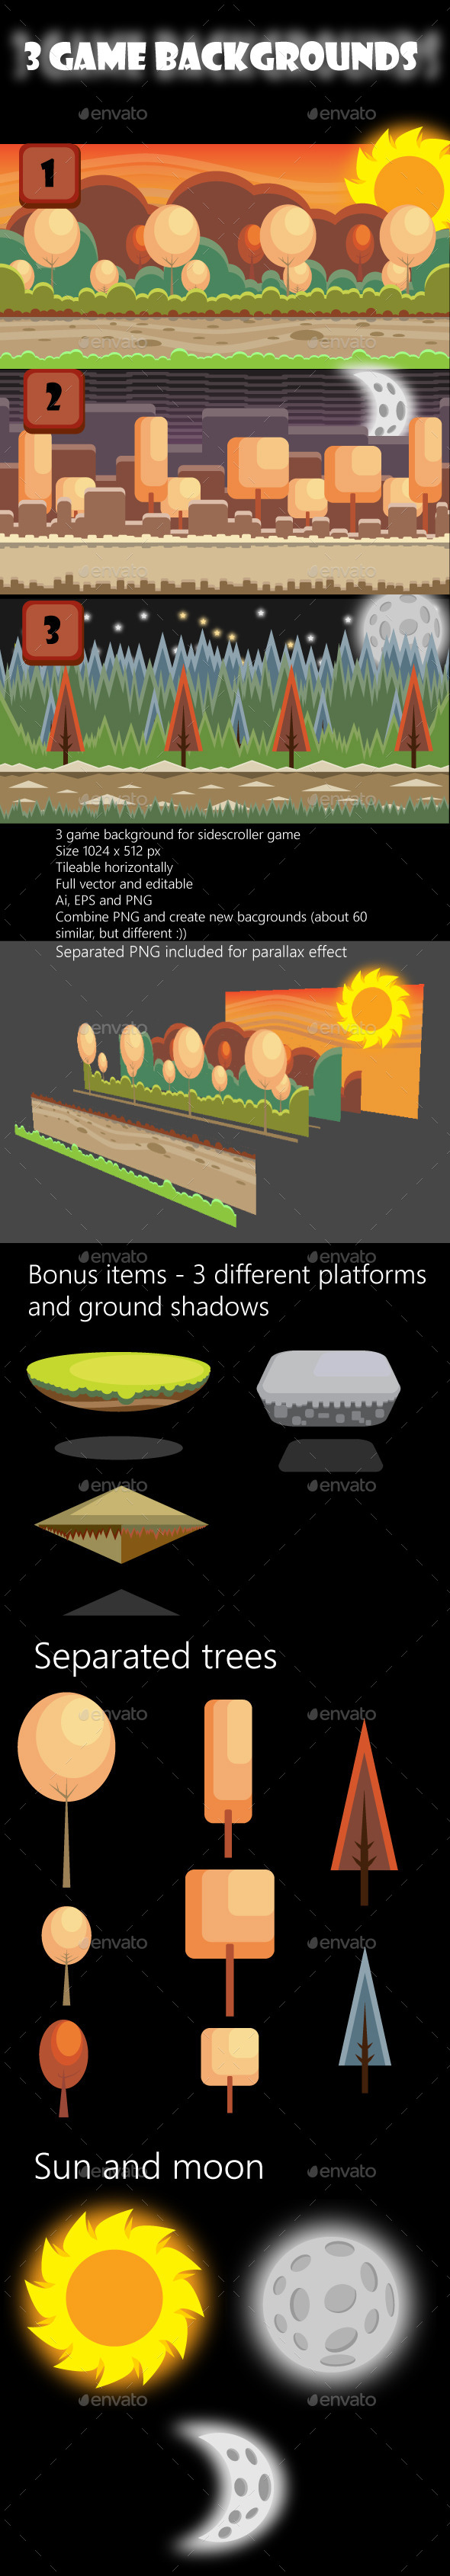 3 Game Backgrounds - Backgrounds Game Assets